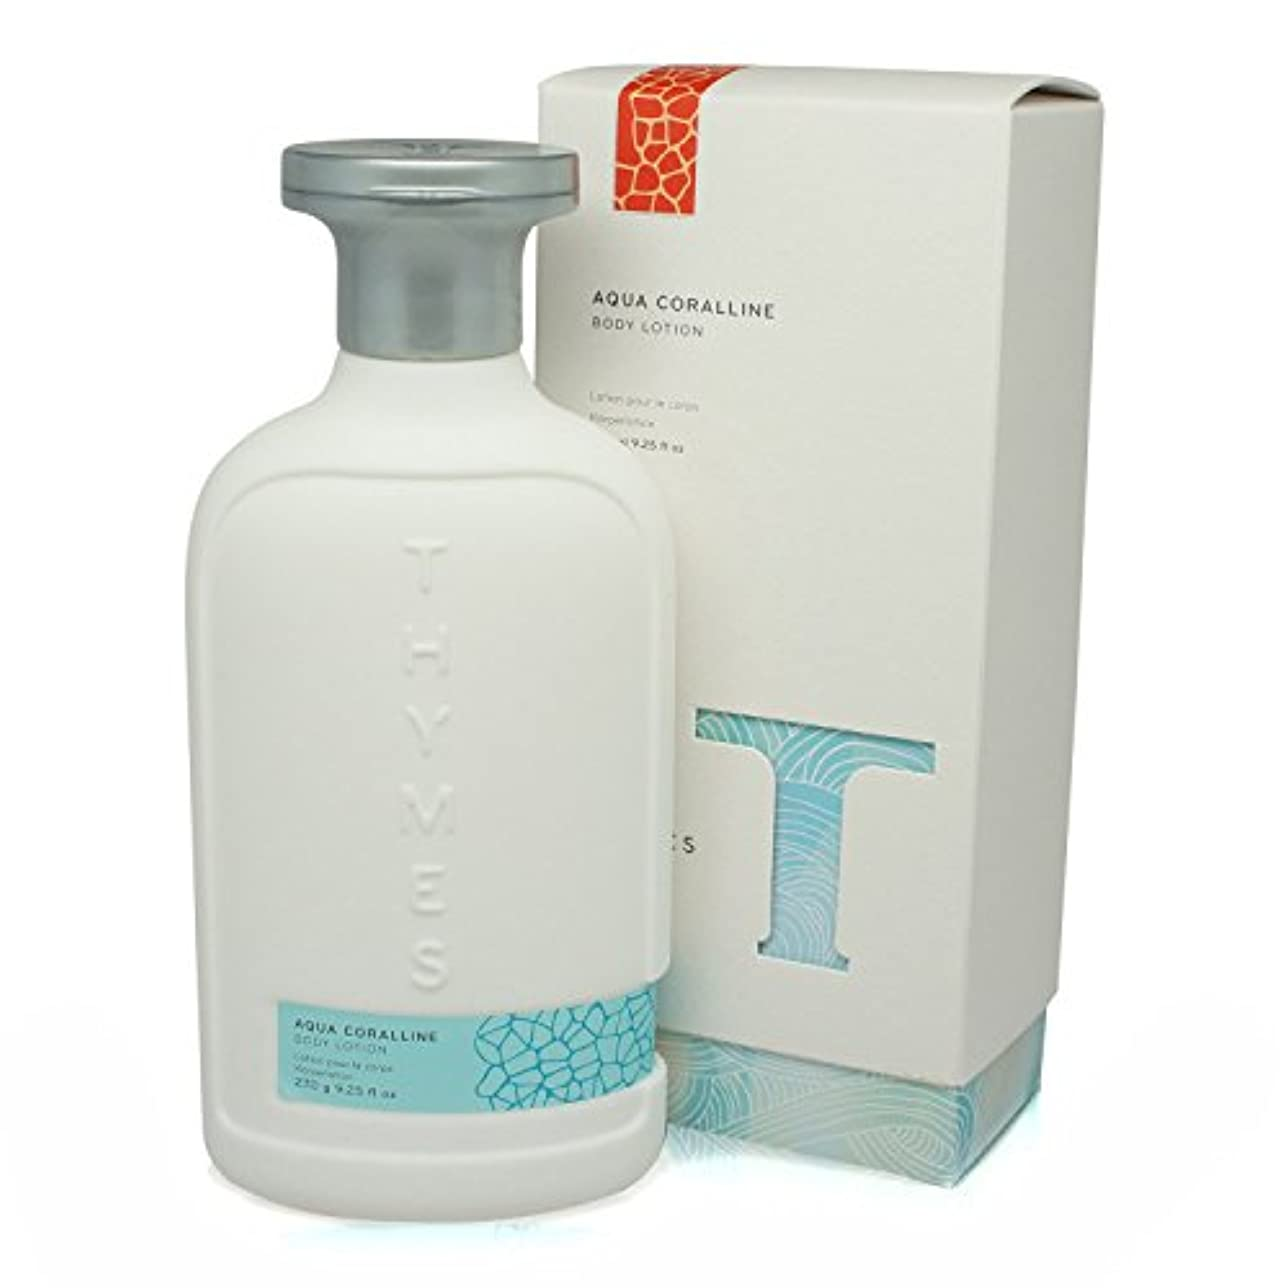 意義化石意義Thymes 637666041926 Aqua Coralline Body Lotion